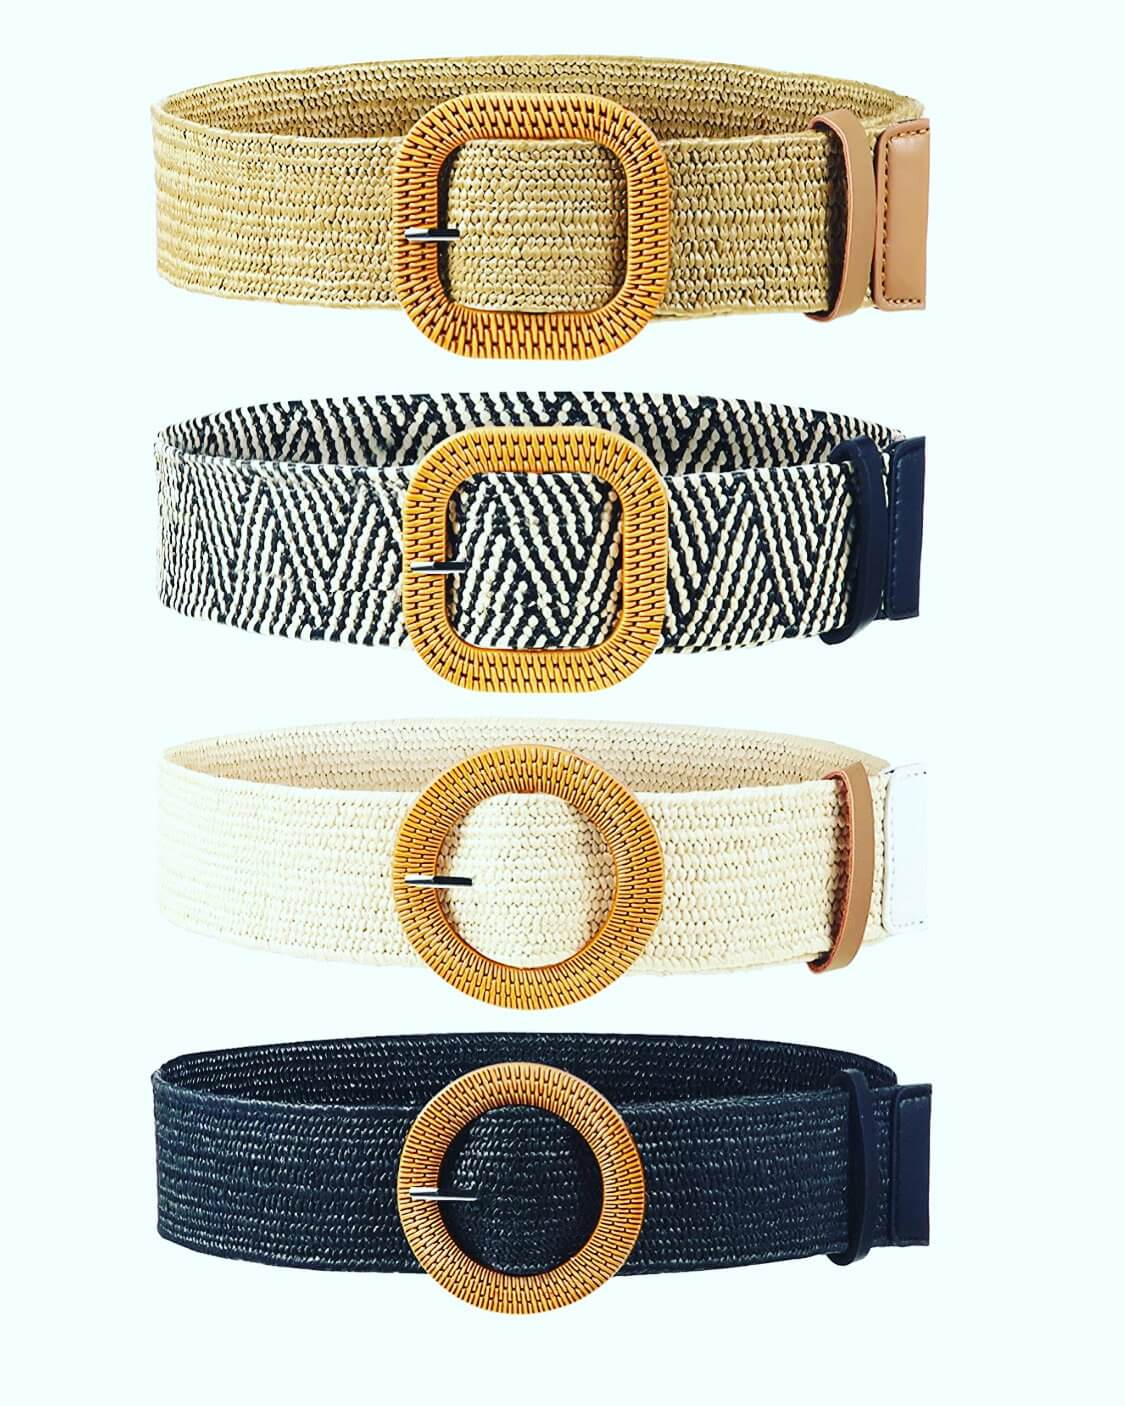 boho belts colors Camel, Black, Beigs, Black with Beigs